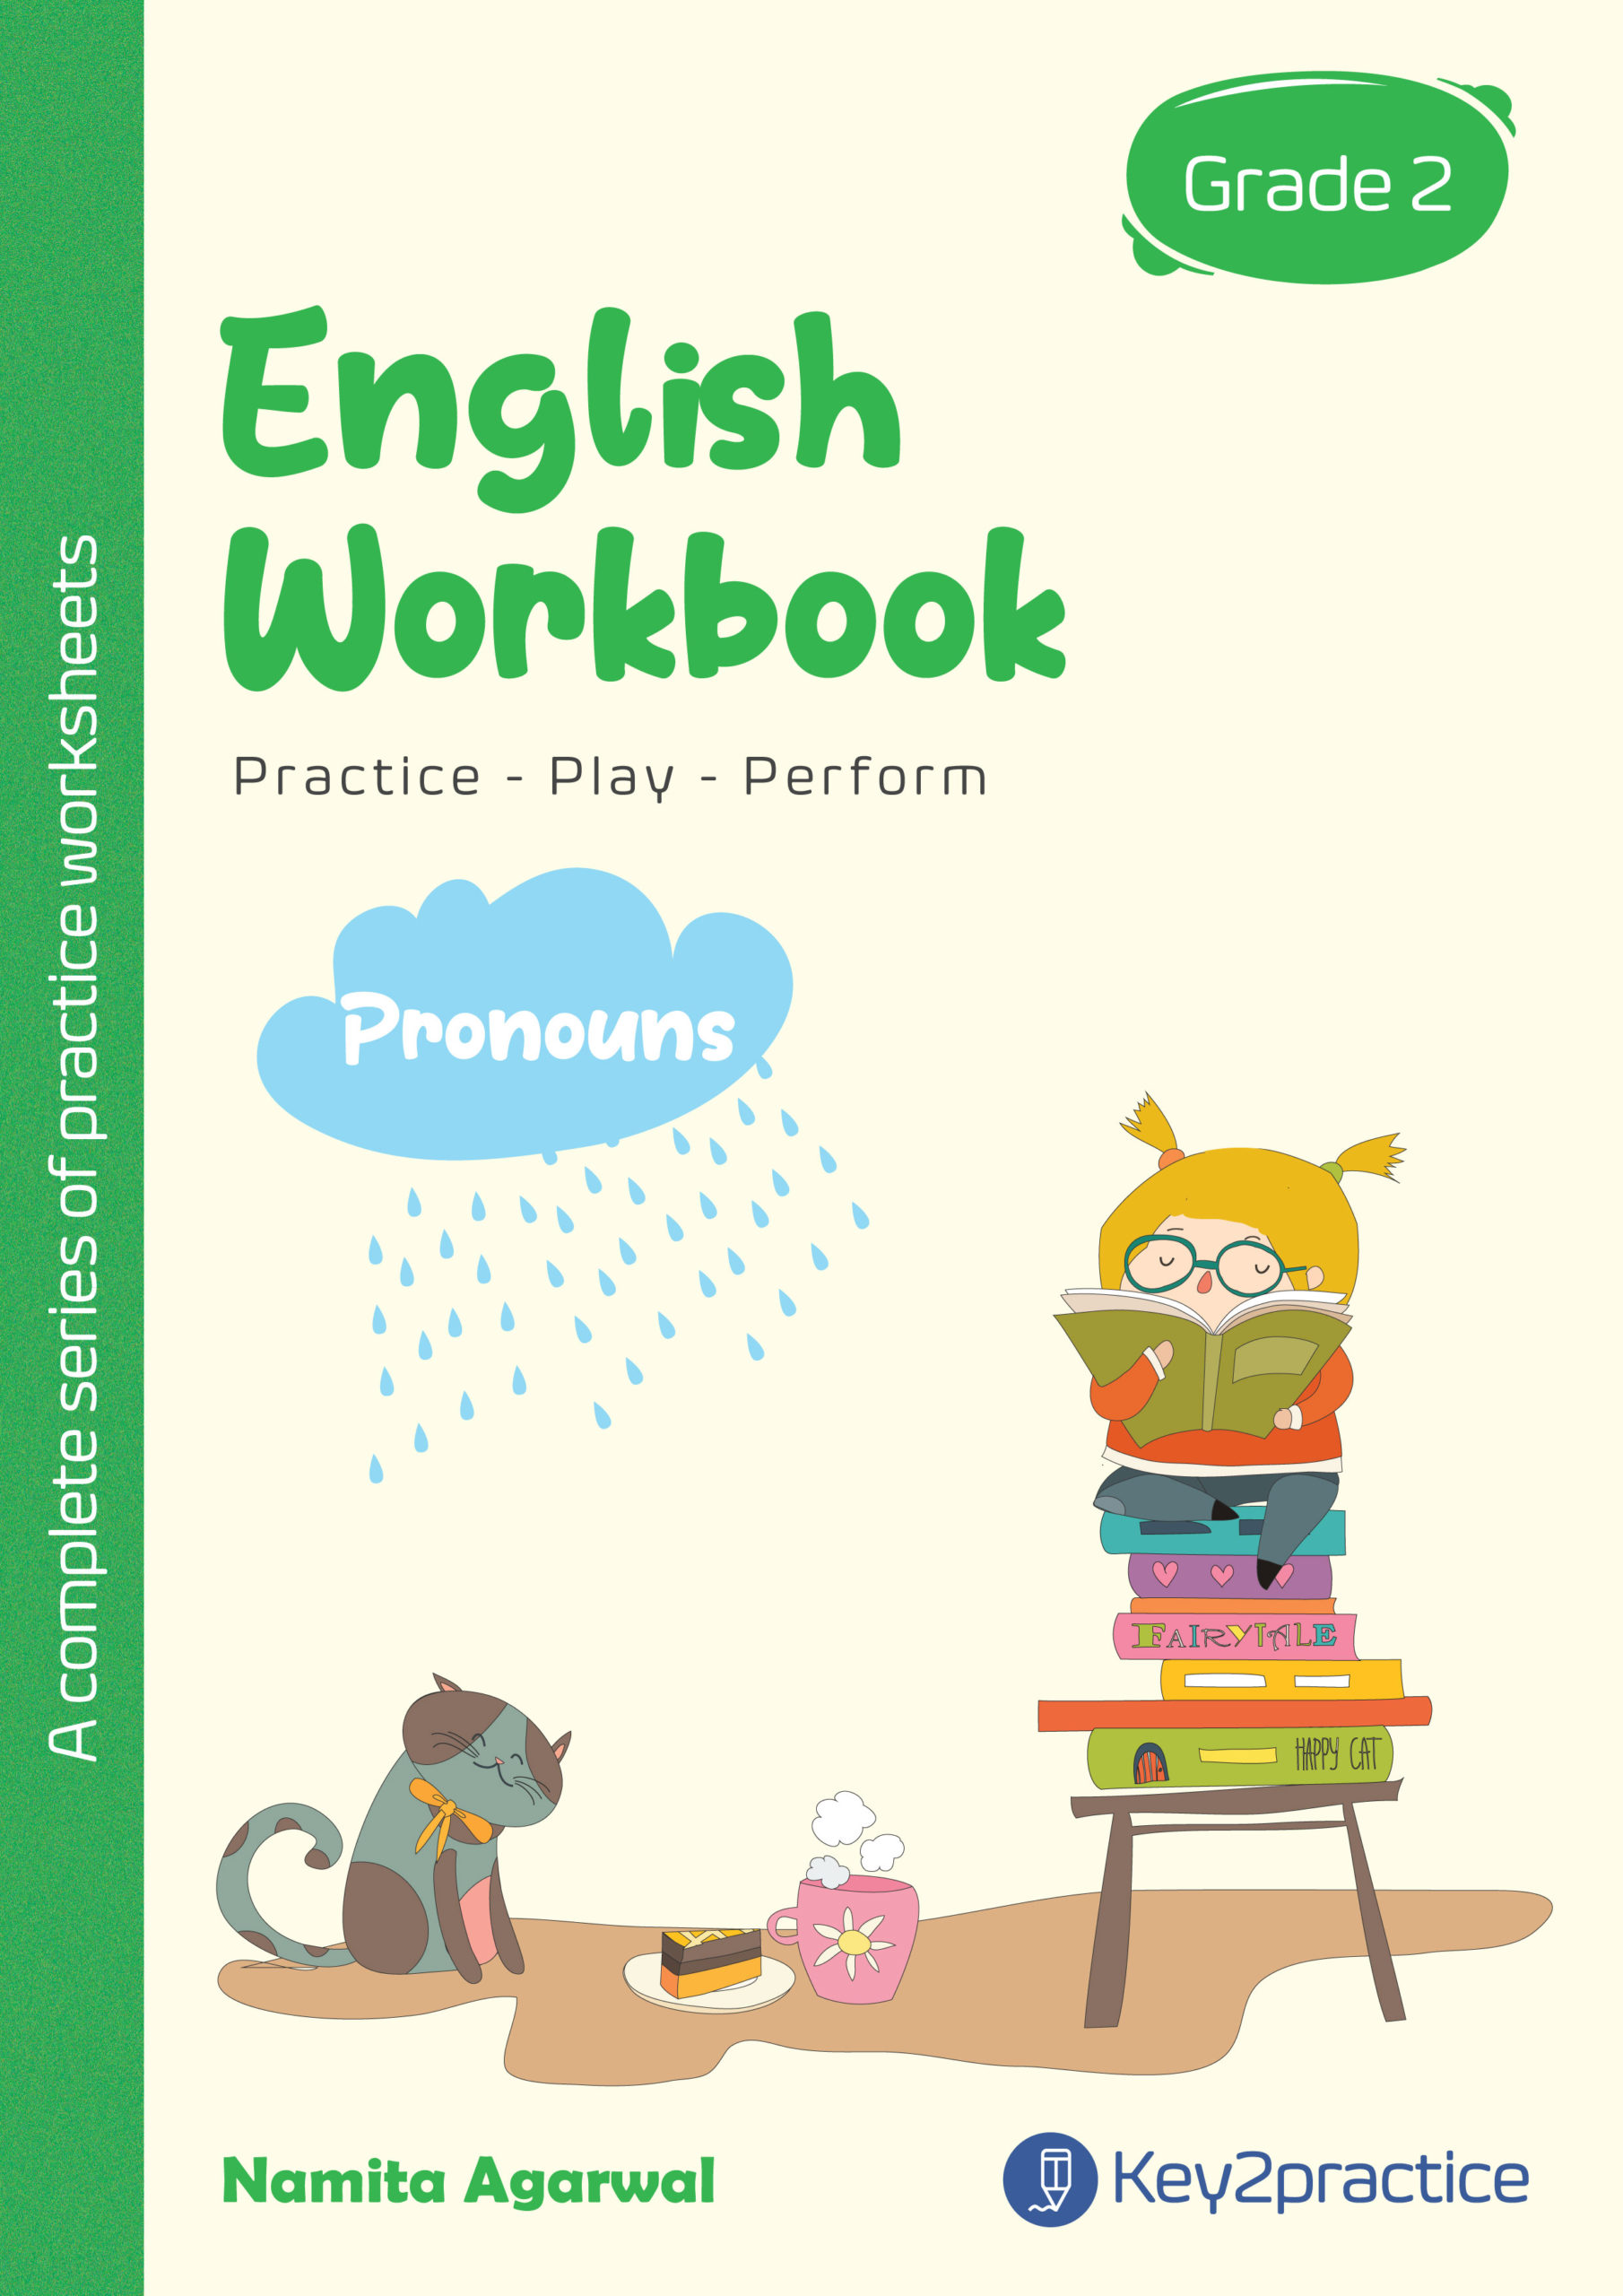 Pronouns Worksheets Grade 2 I English Key2practice Workbooks